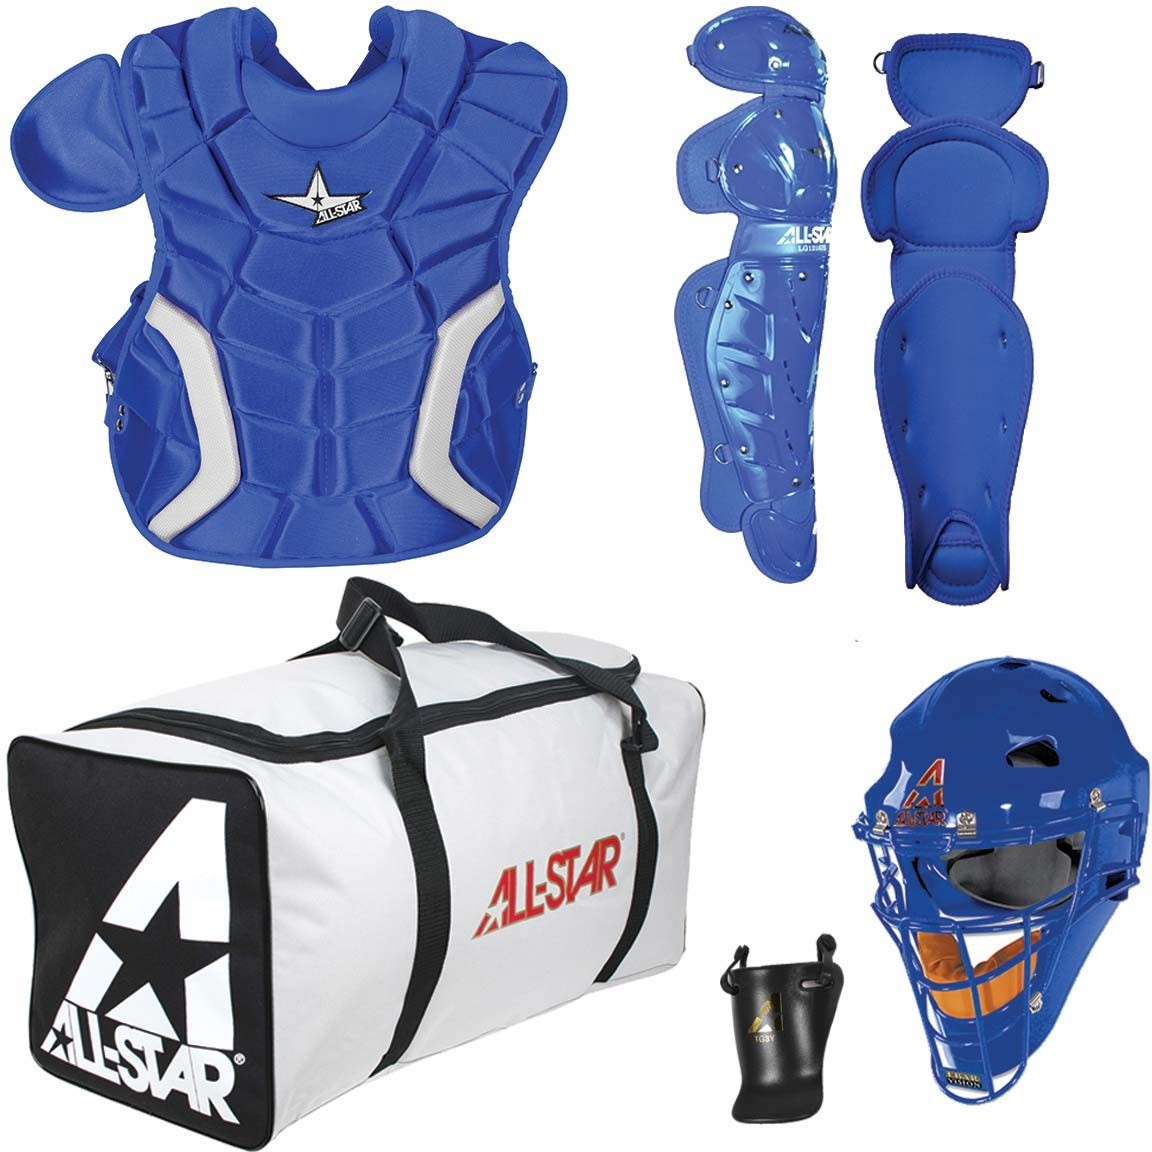 All Star Ck79ps Players Series Catchers Equipment Kit Youth Ages 7 9